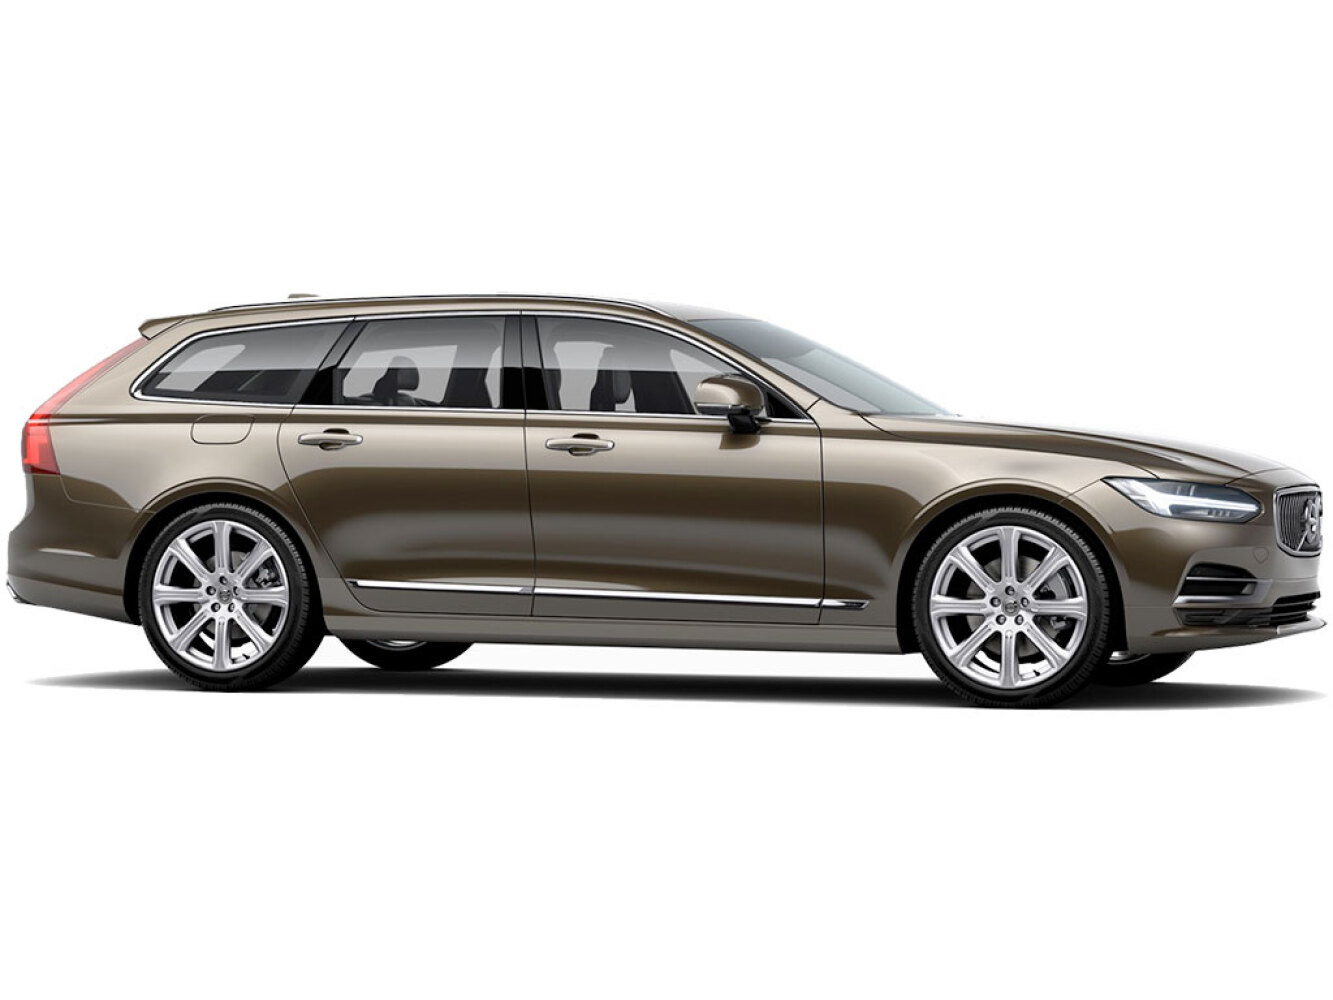 new volvo v90 2 0 t8 390 hybrid inscription pro 5dr awd gtron estate for sale bristol street. Black Bedroom Furniture Sets. Home Design Ideas